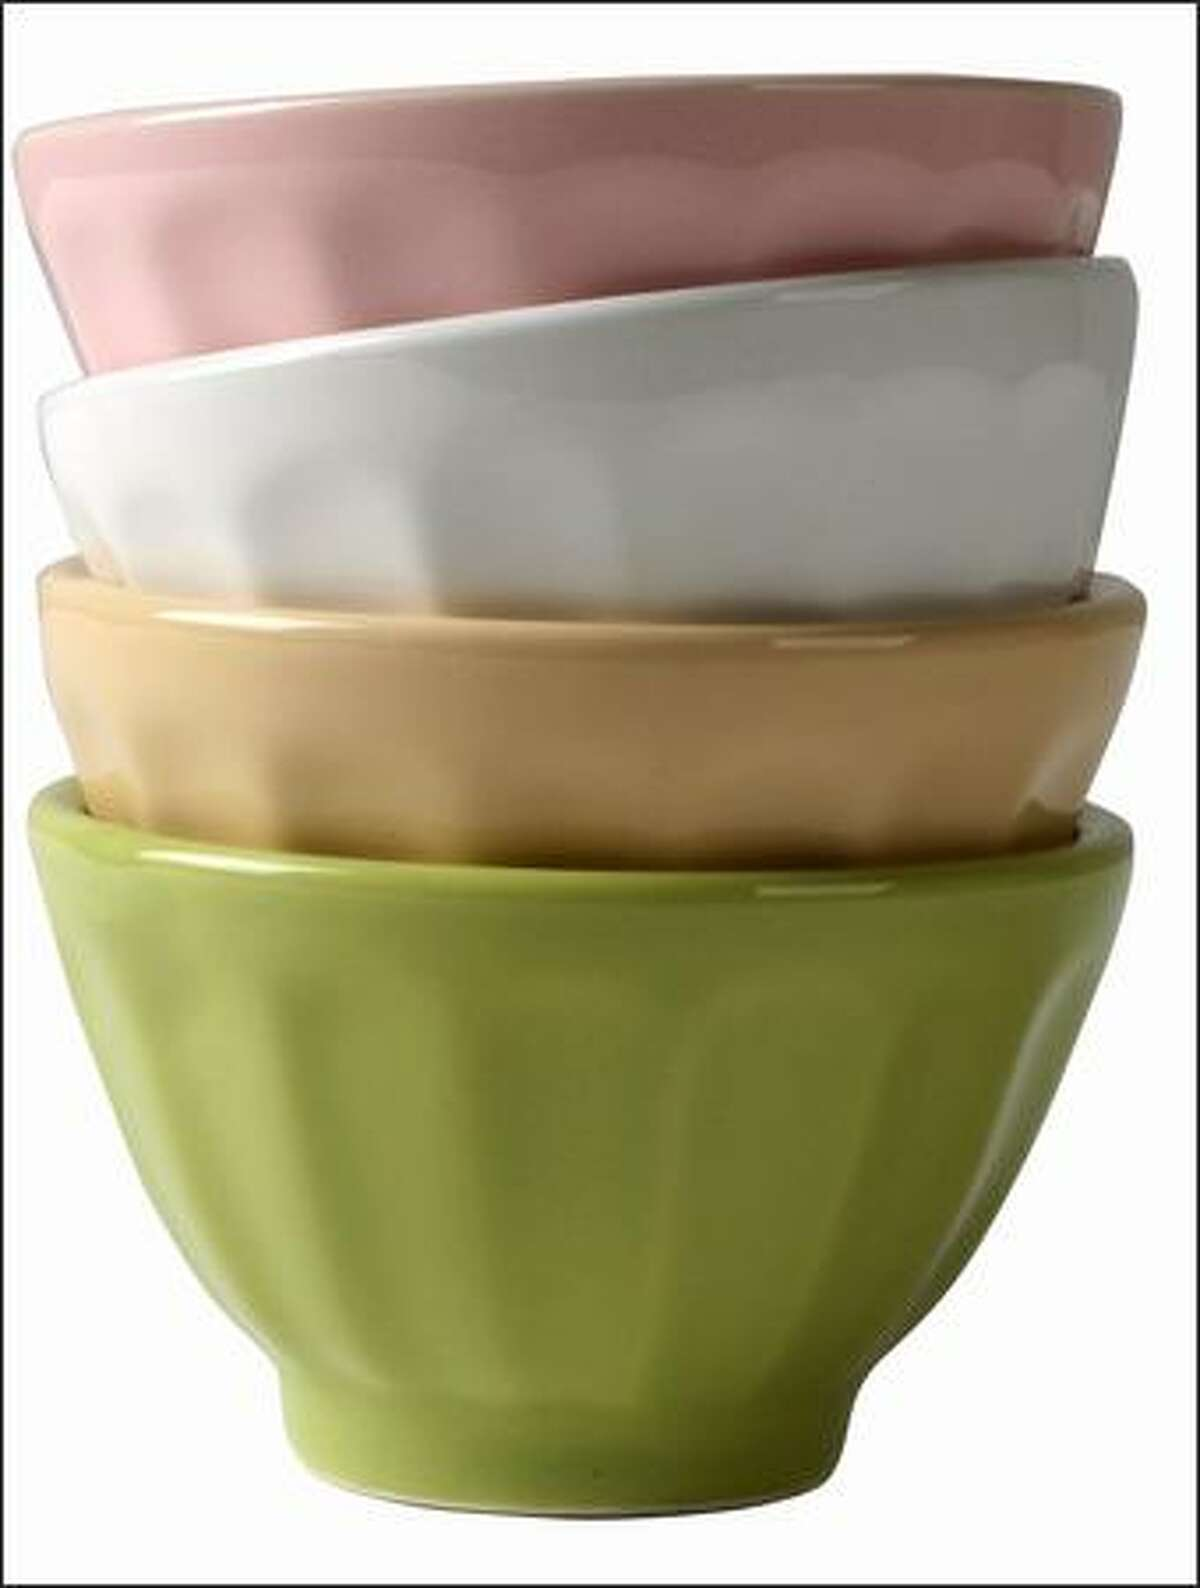 $10 Mini latte bowls I'm smitten with these charming little bowls. Pink, white, yellow, green, blue or chocolate brown. Set of four. From Anthropologie.